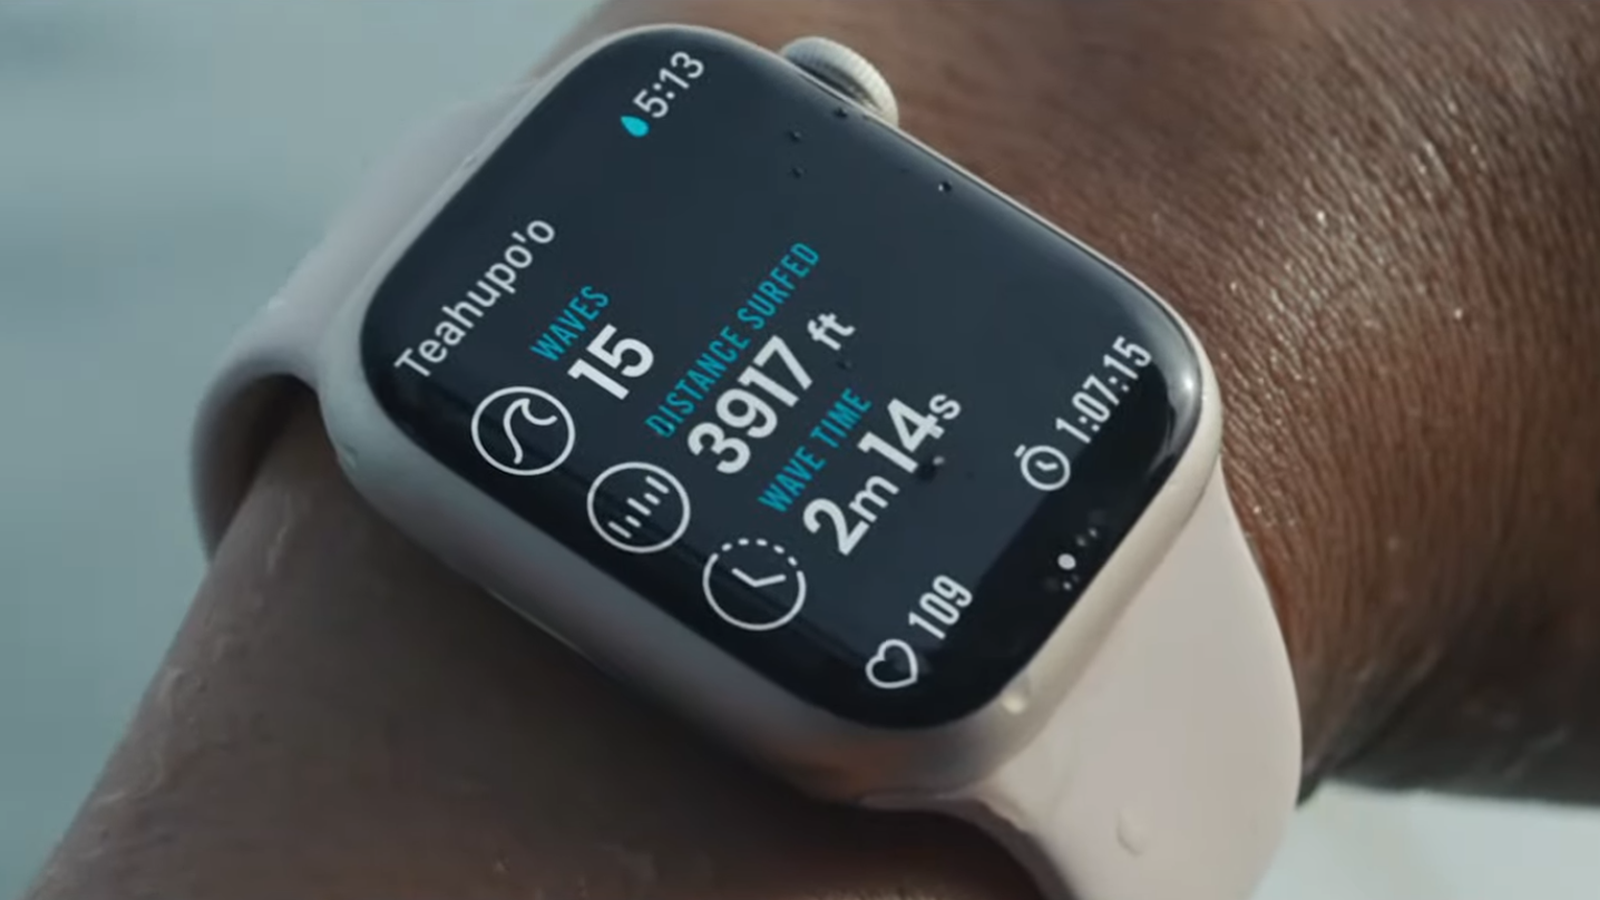 Apple Watch Series 7 on wrist just out of the pool